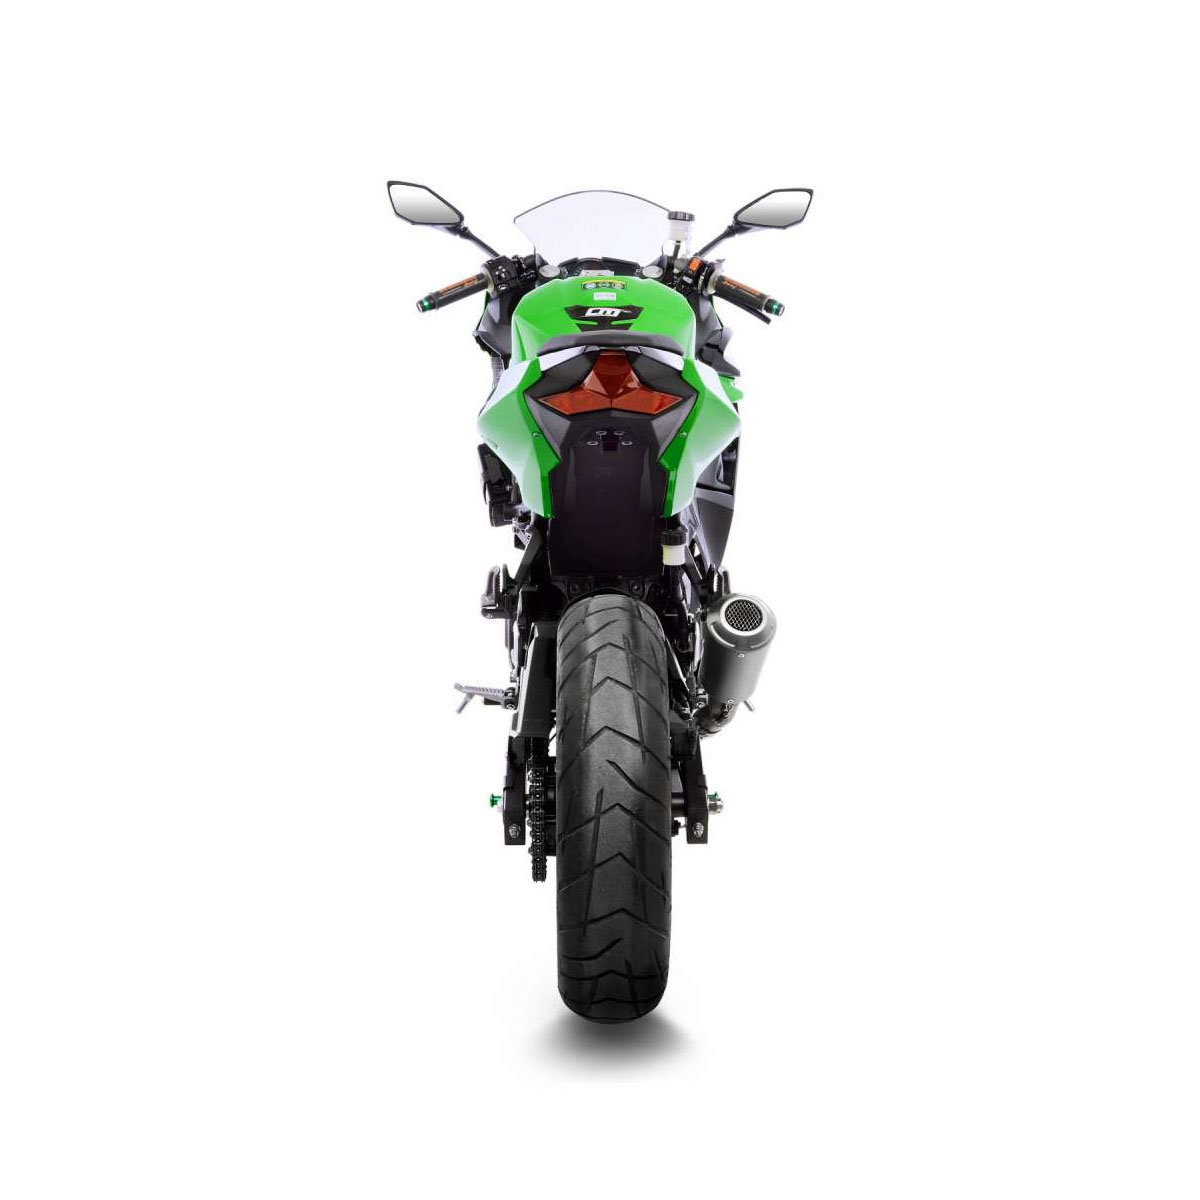 Motors Other Motorcycle Exhausts Exhaust Systems Kawasaki Ninja 400 2018 2019 Leovince Lv 10 Race Exhaust Black Edition In Stock